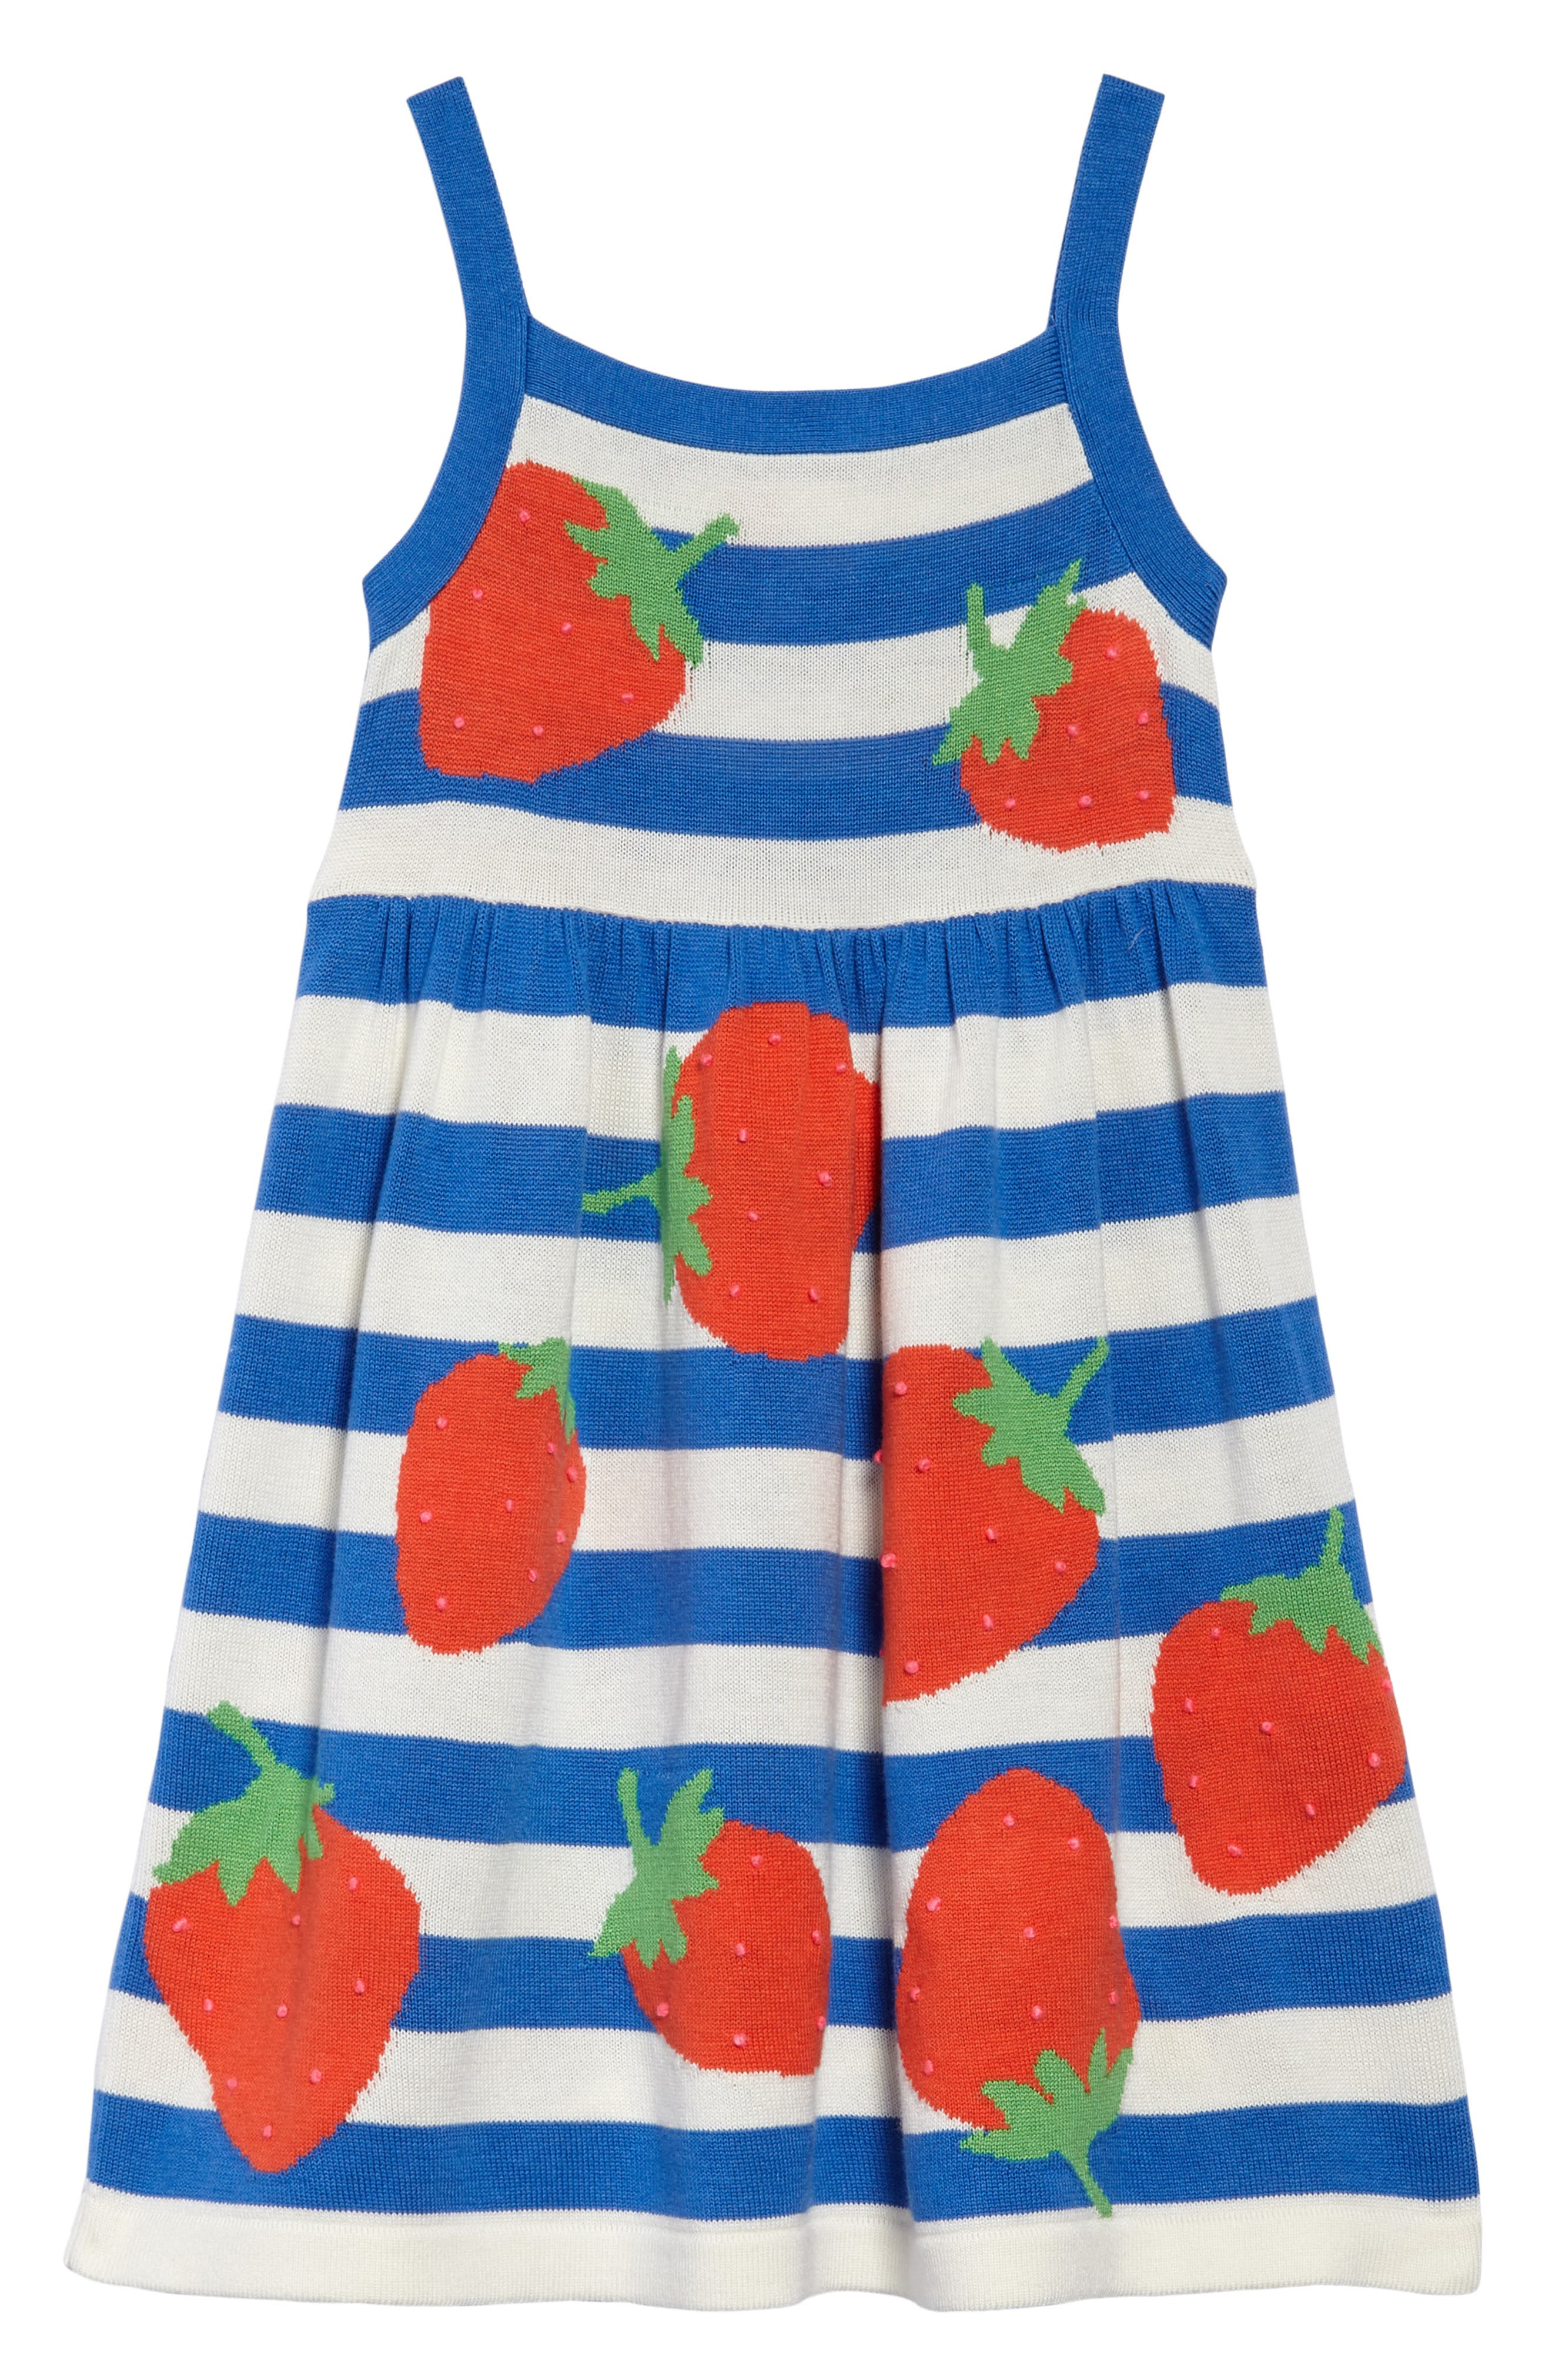 Fruity Summer Dress,                         Main,                         color, 424